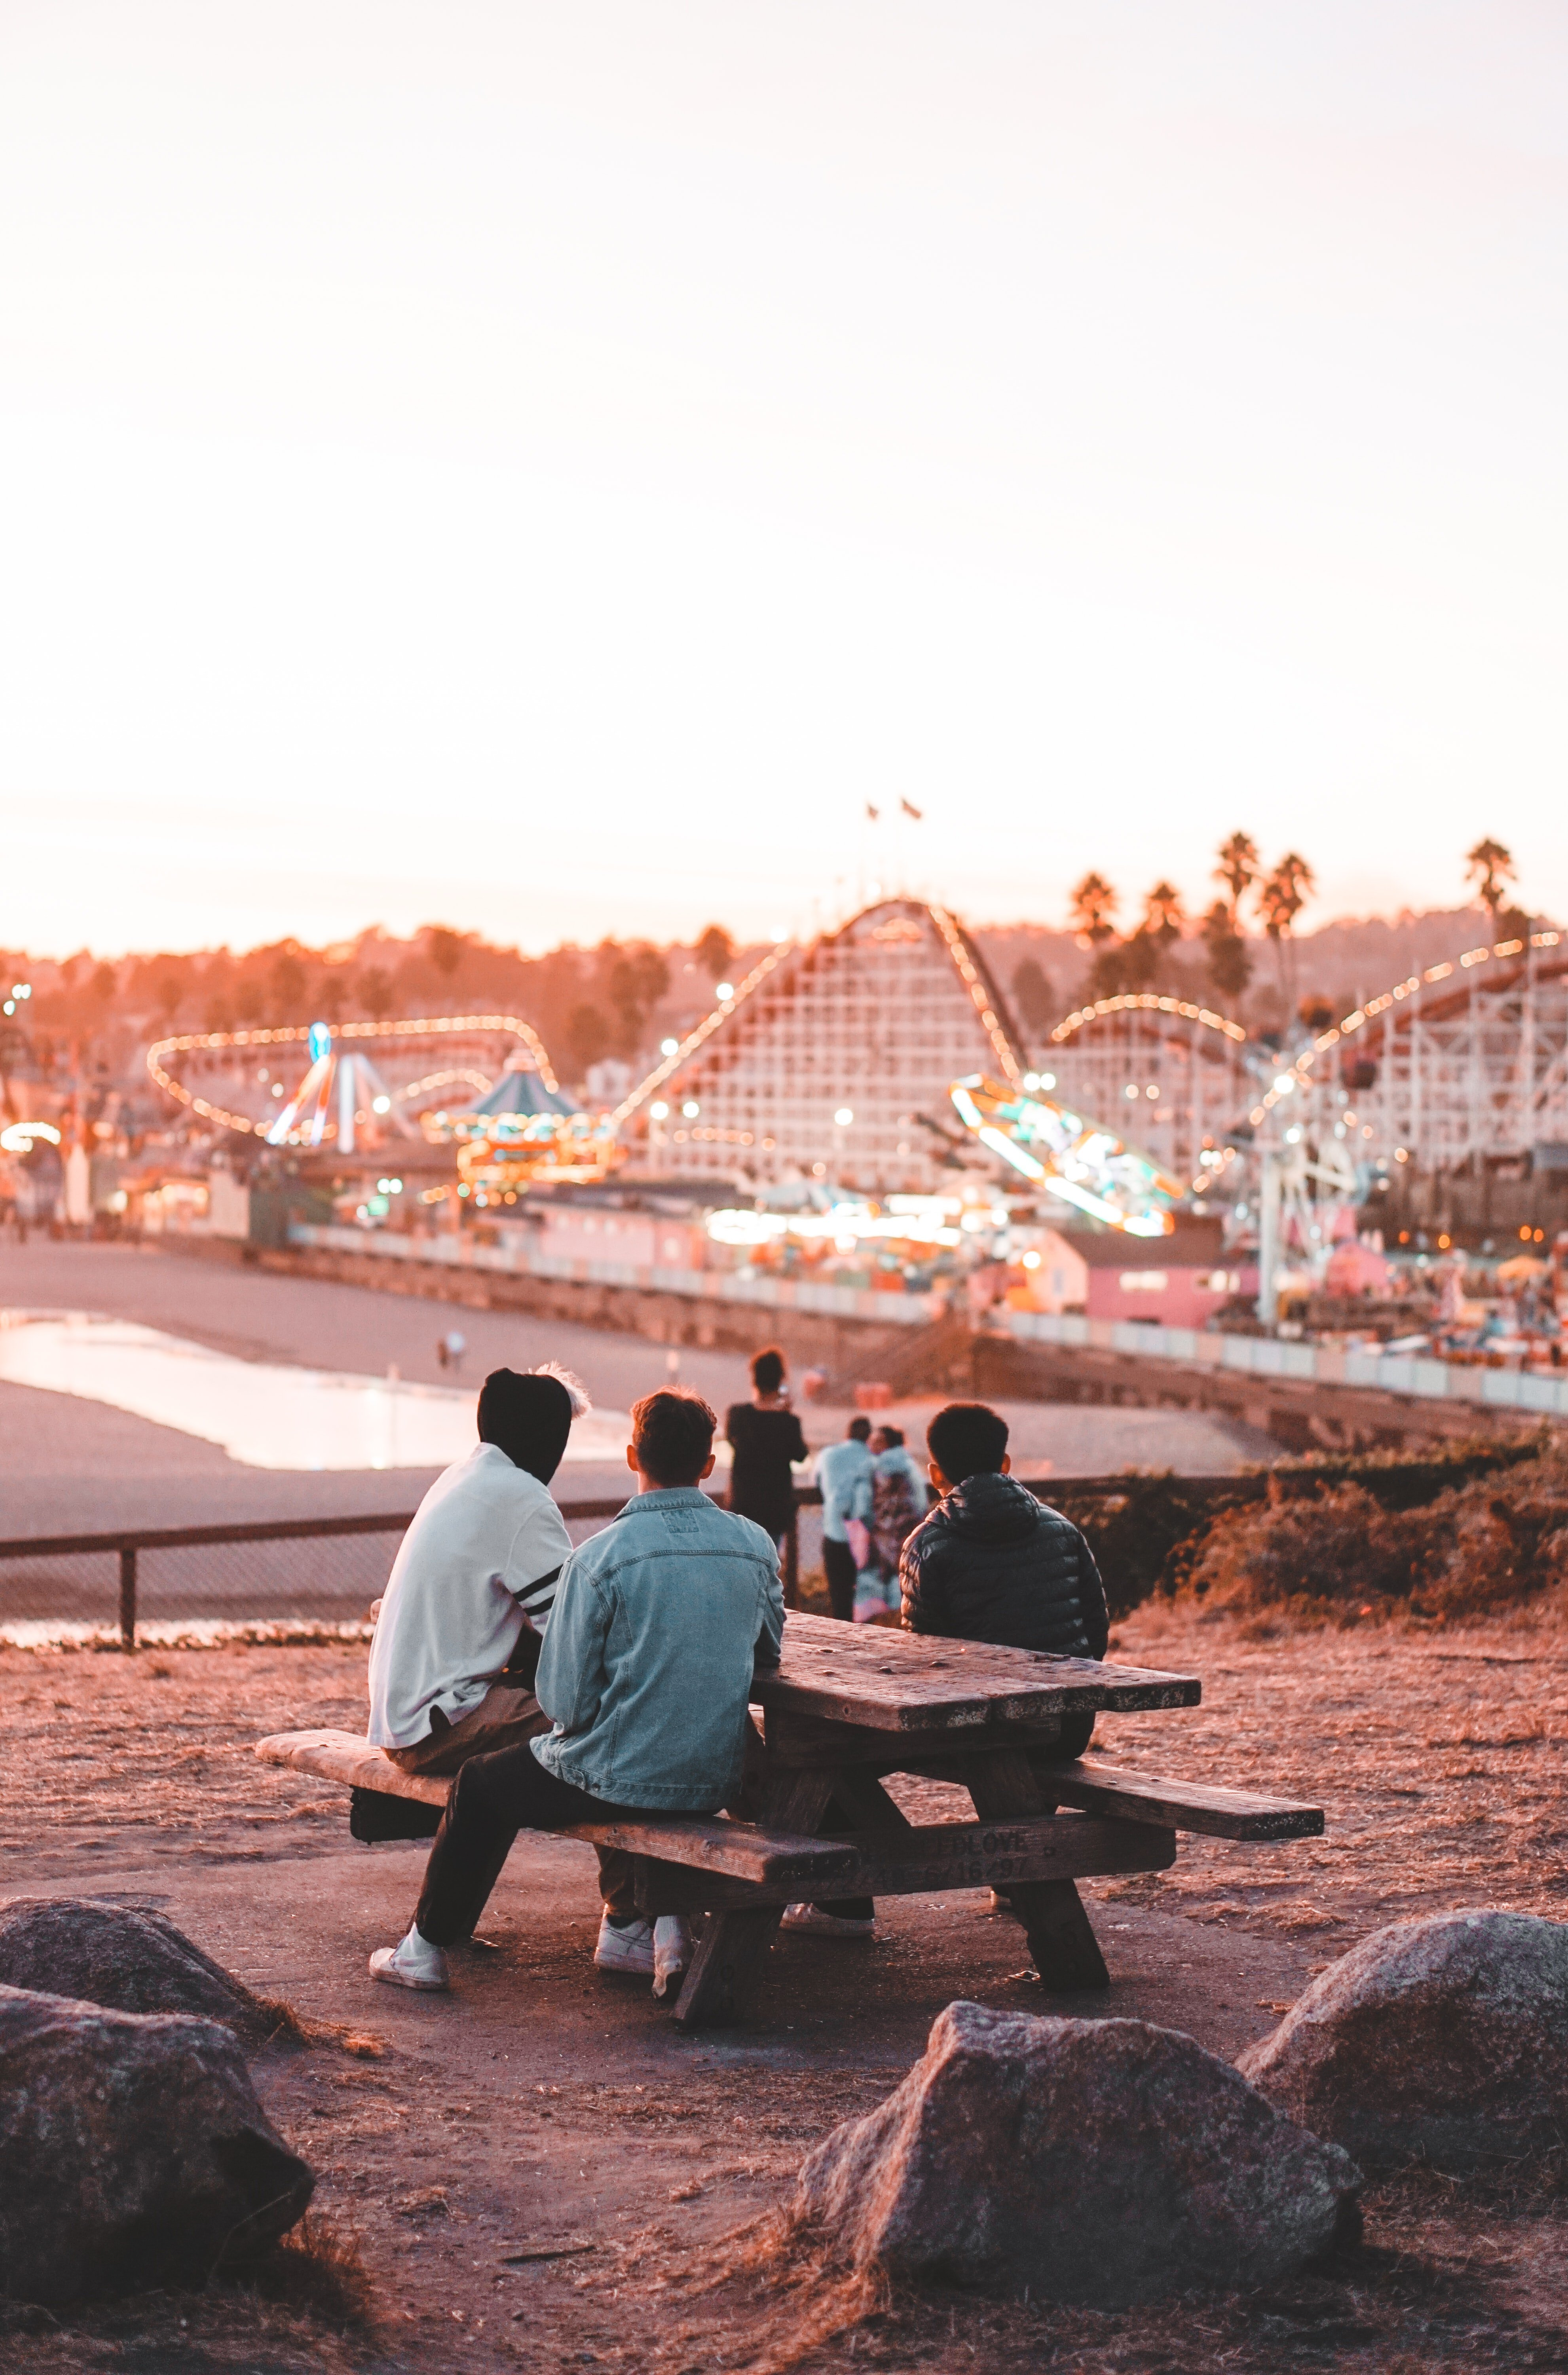 A group of friends is sitting on a bench in a theme park. In the background you can see roller coasters and other rides.